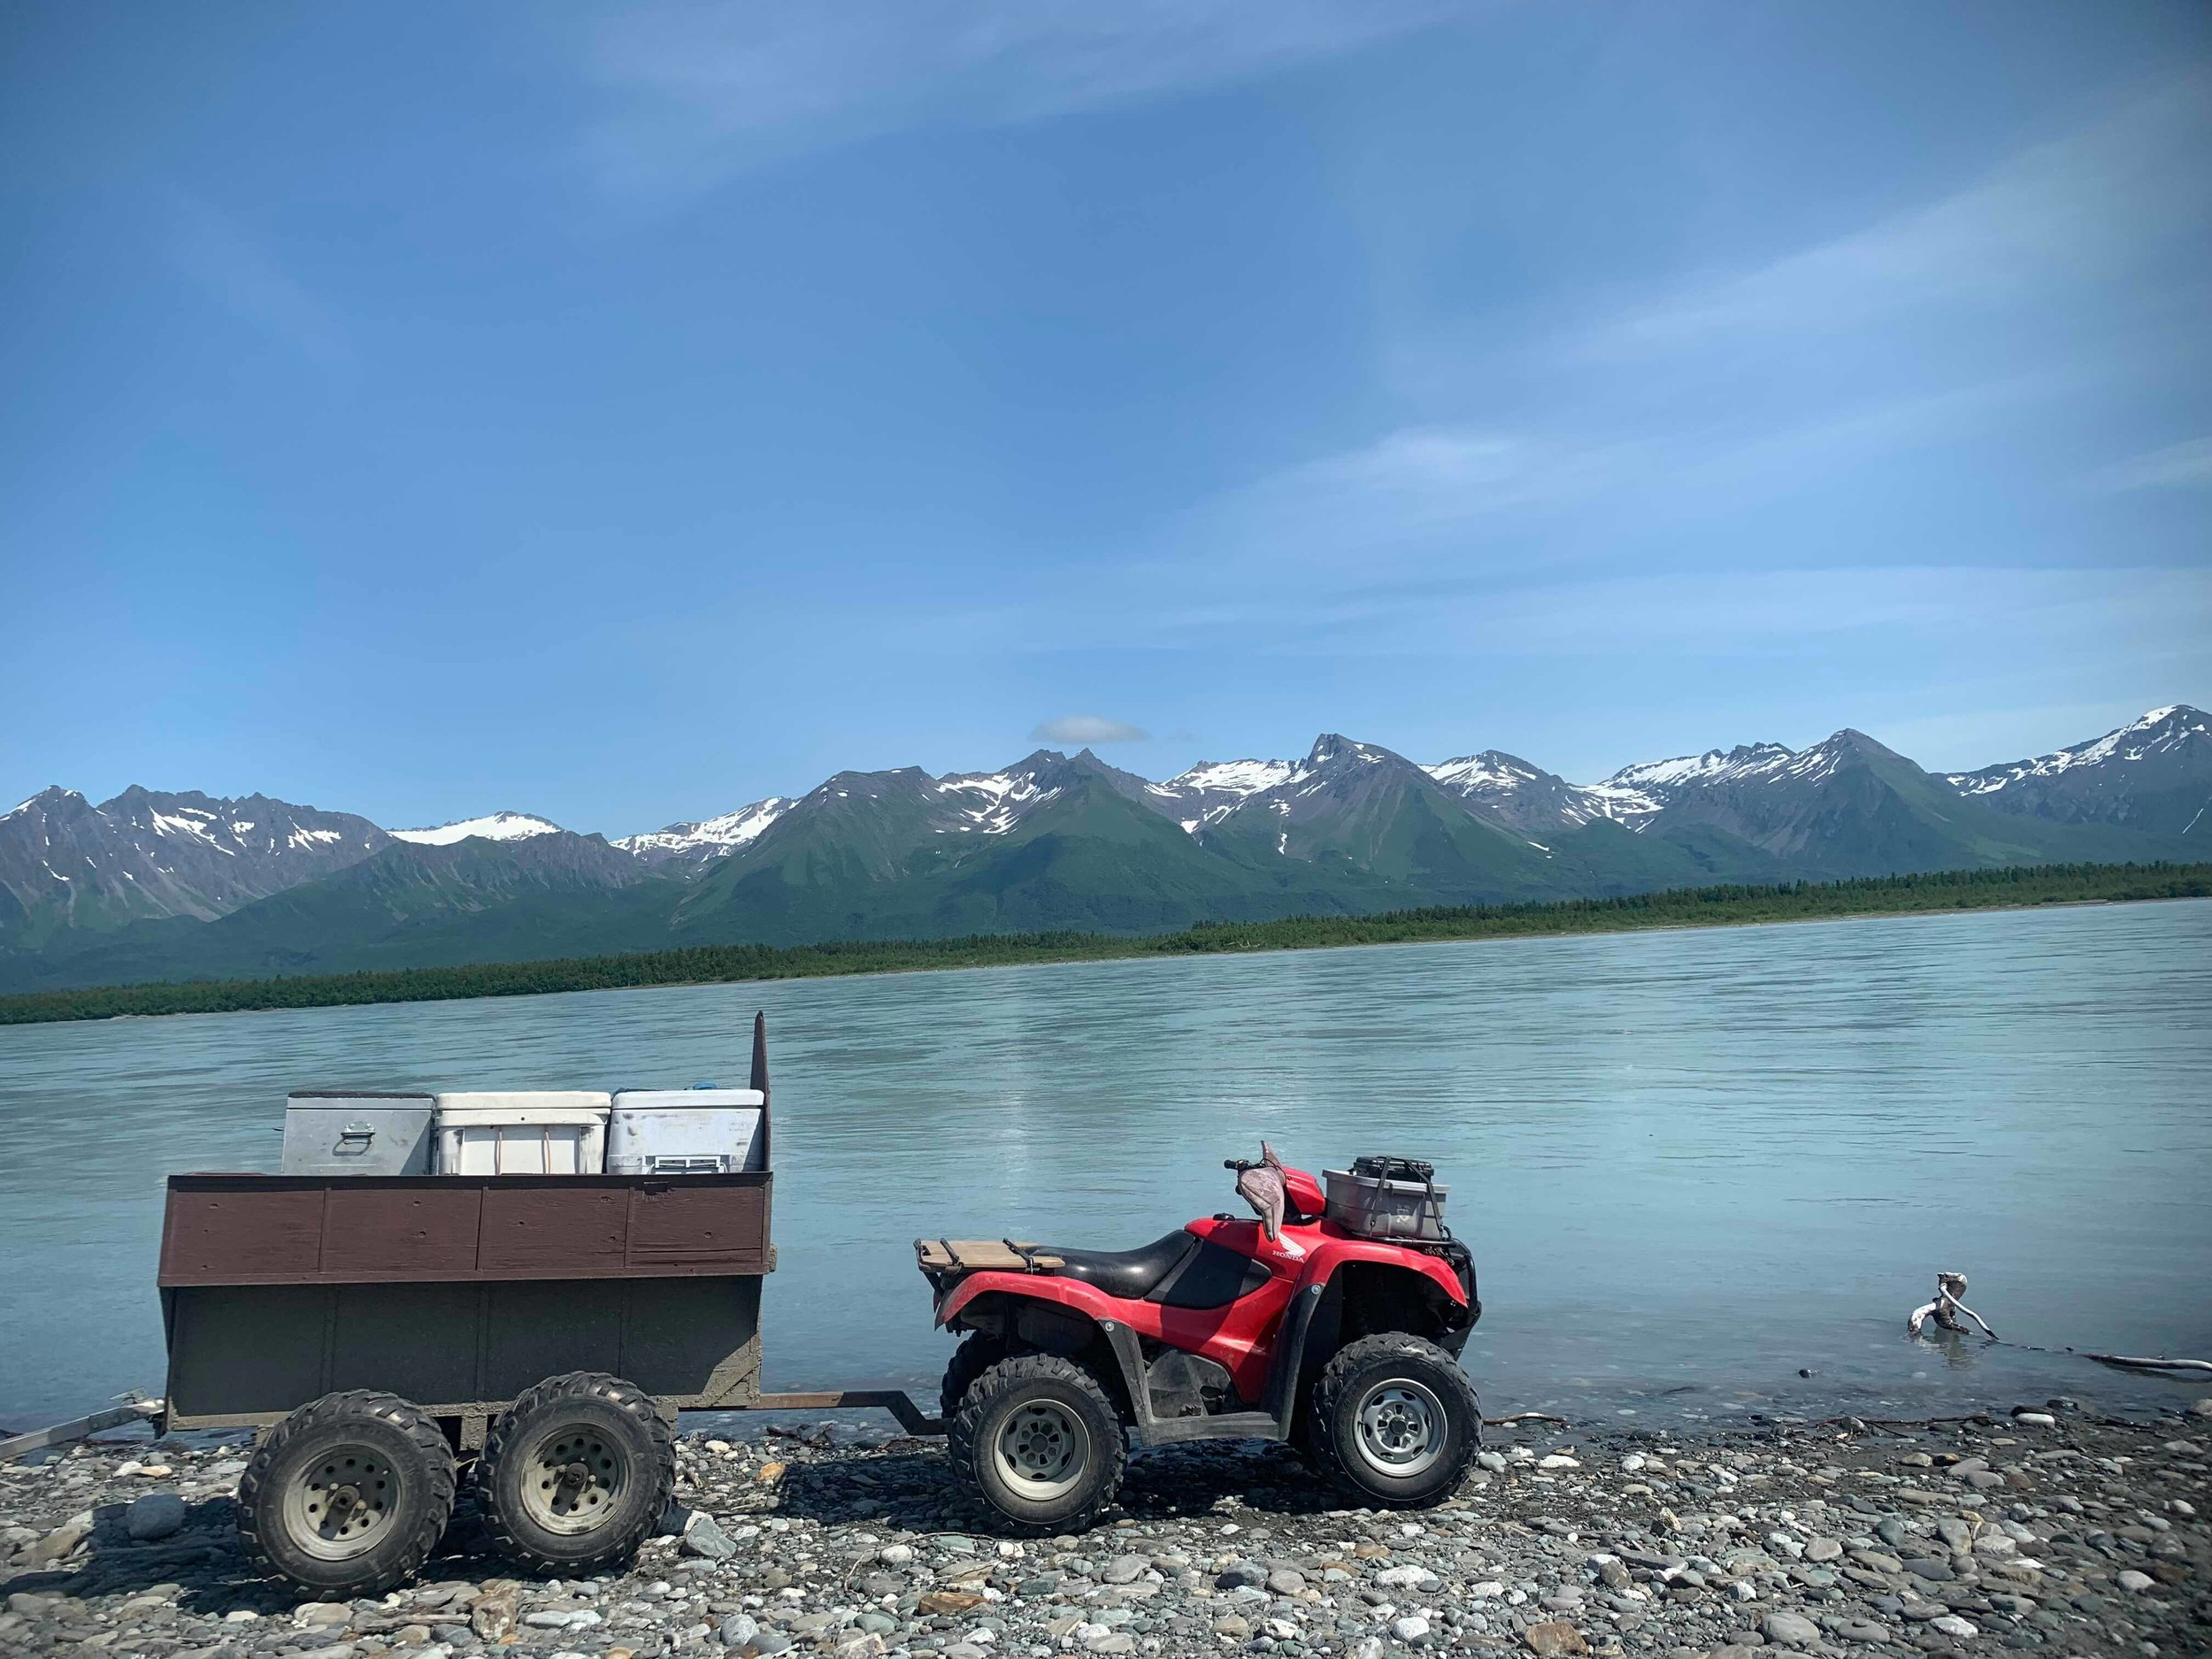 Alsek river transport services. - We provide service transporting your rafting group and gear from the Upper takeout to the Dry Bay runway. We also offer day trips to the Ocean beach and fishing trips on the East river. If you have a group that is taking out on the Alsek contact us for availability.